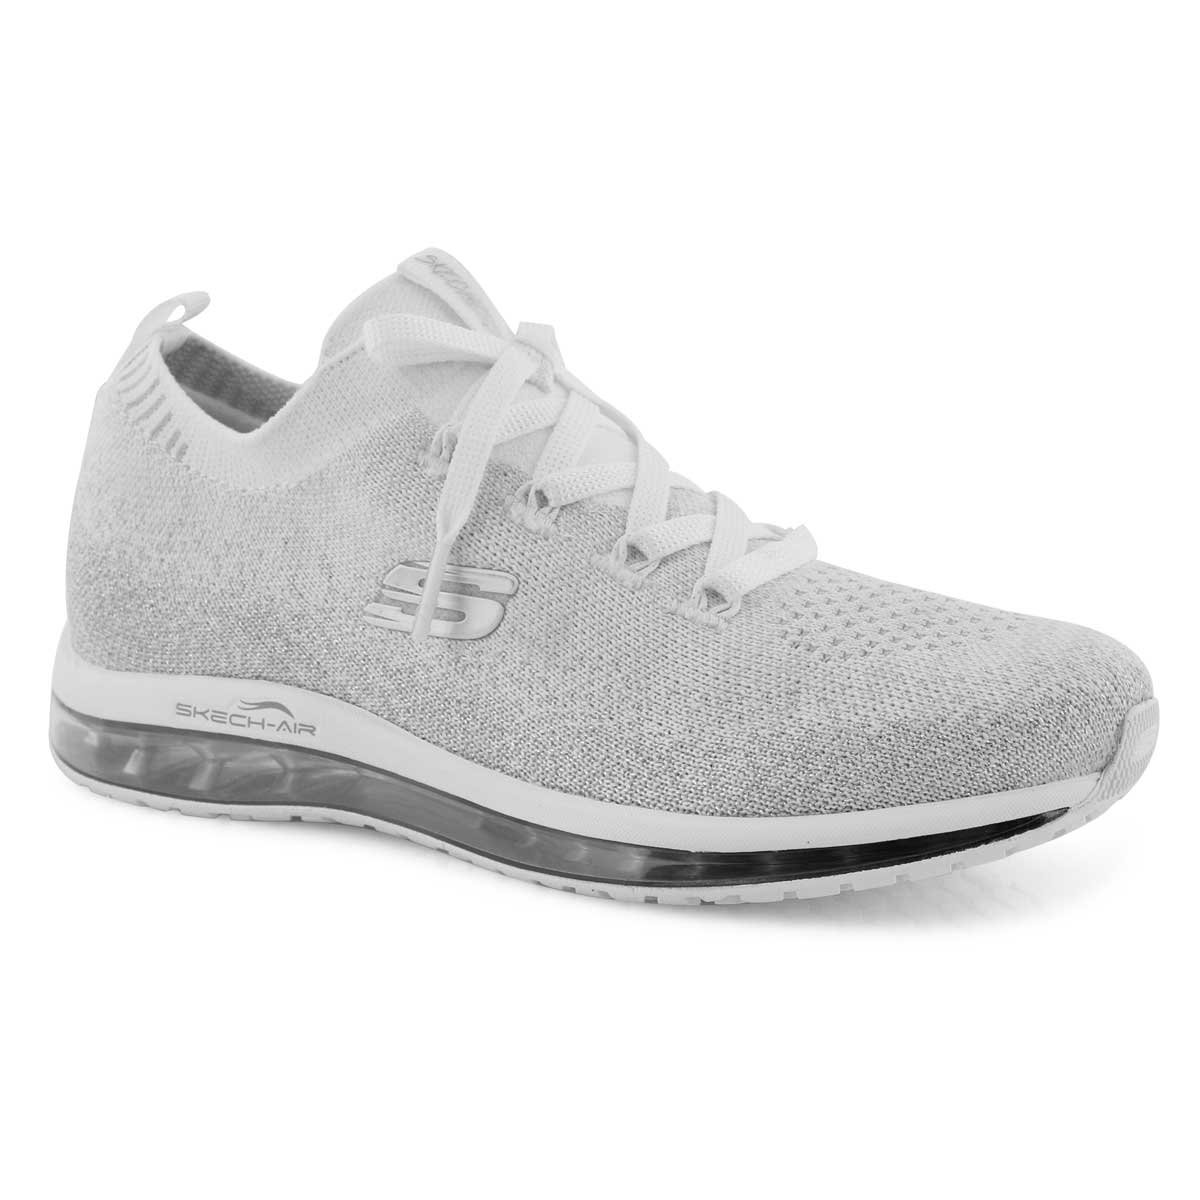 Women's SKECH-AIR ELEMENT white/ silver sneakers